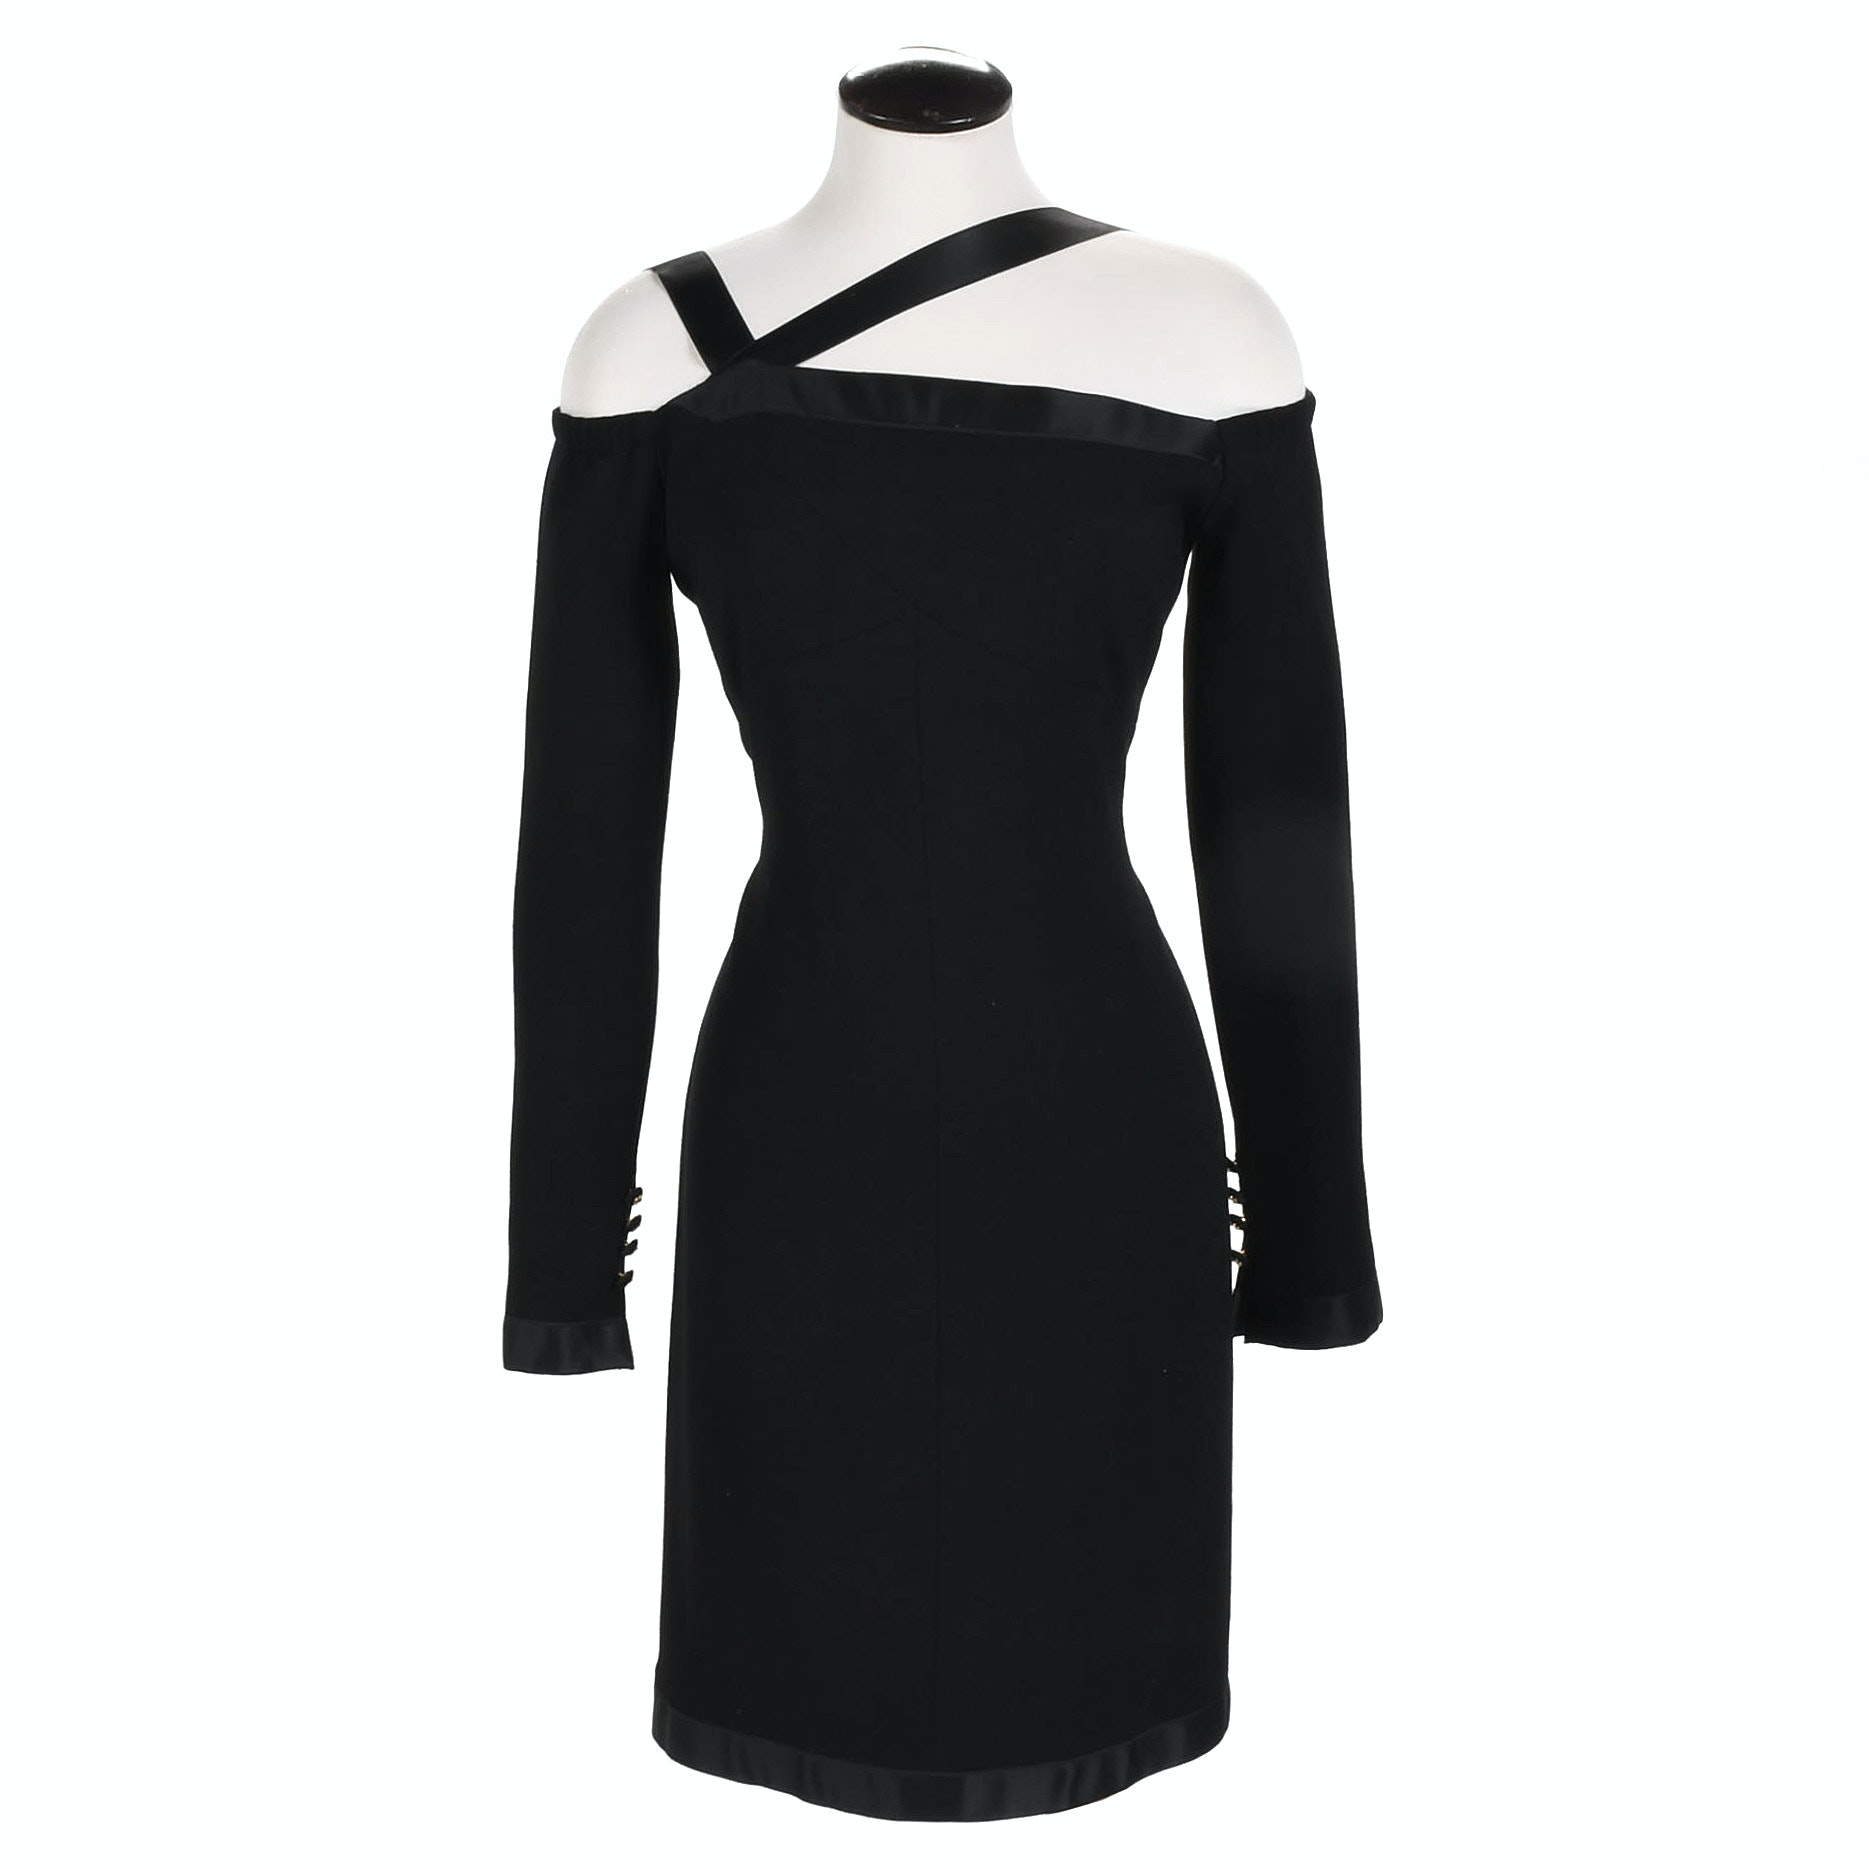 Chanel Boutique Off-the-Shoulder Black Dress, Made in France